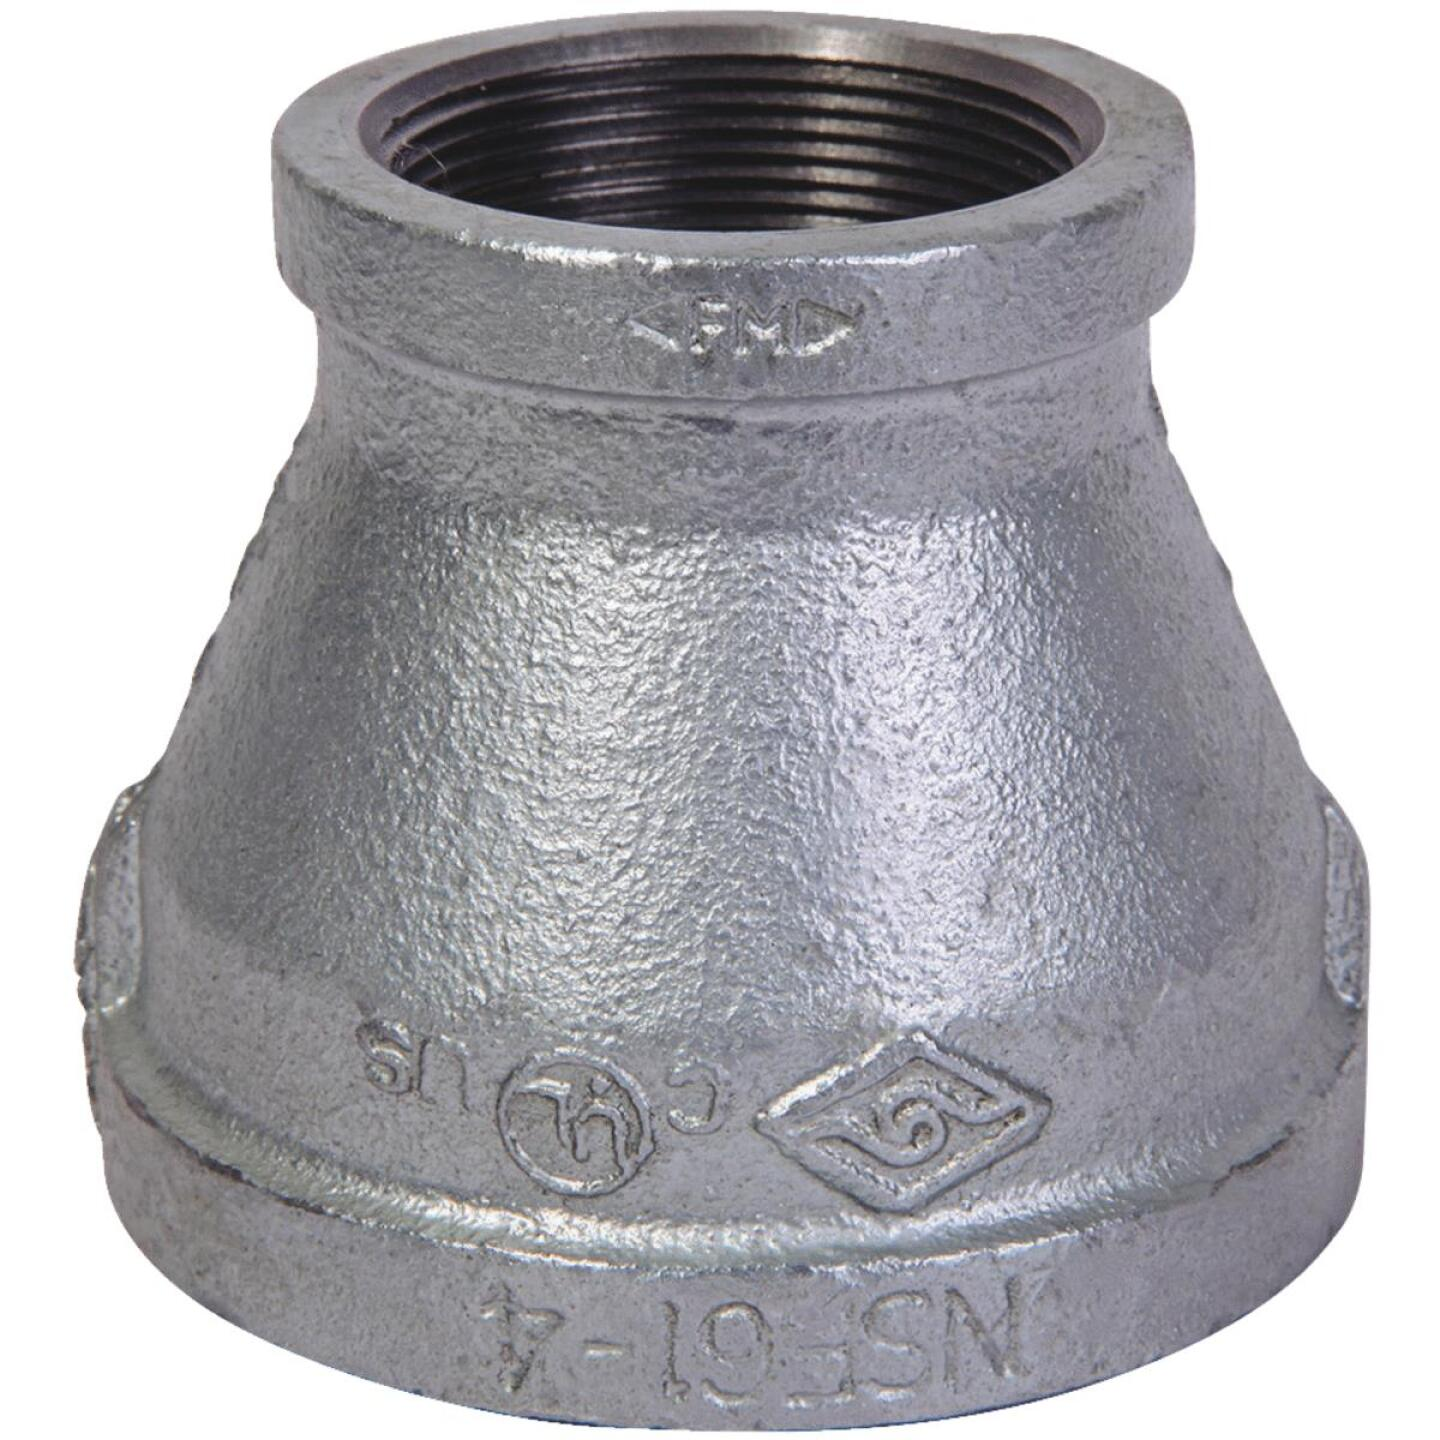 Southland 1-1/4 In. x 3/4 In. FPT Reducing Galvanized Coupling Image 1